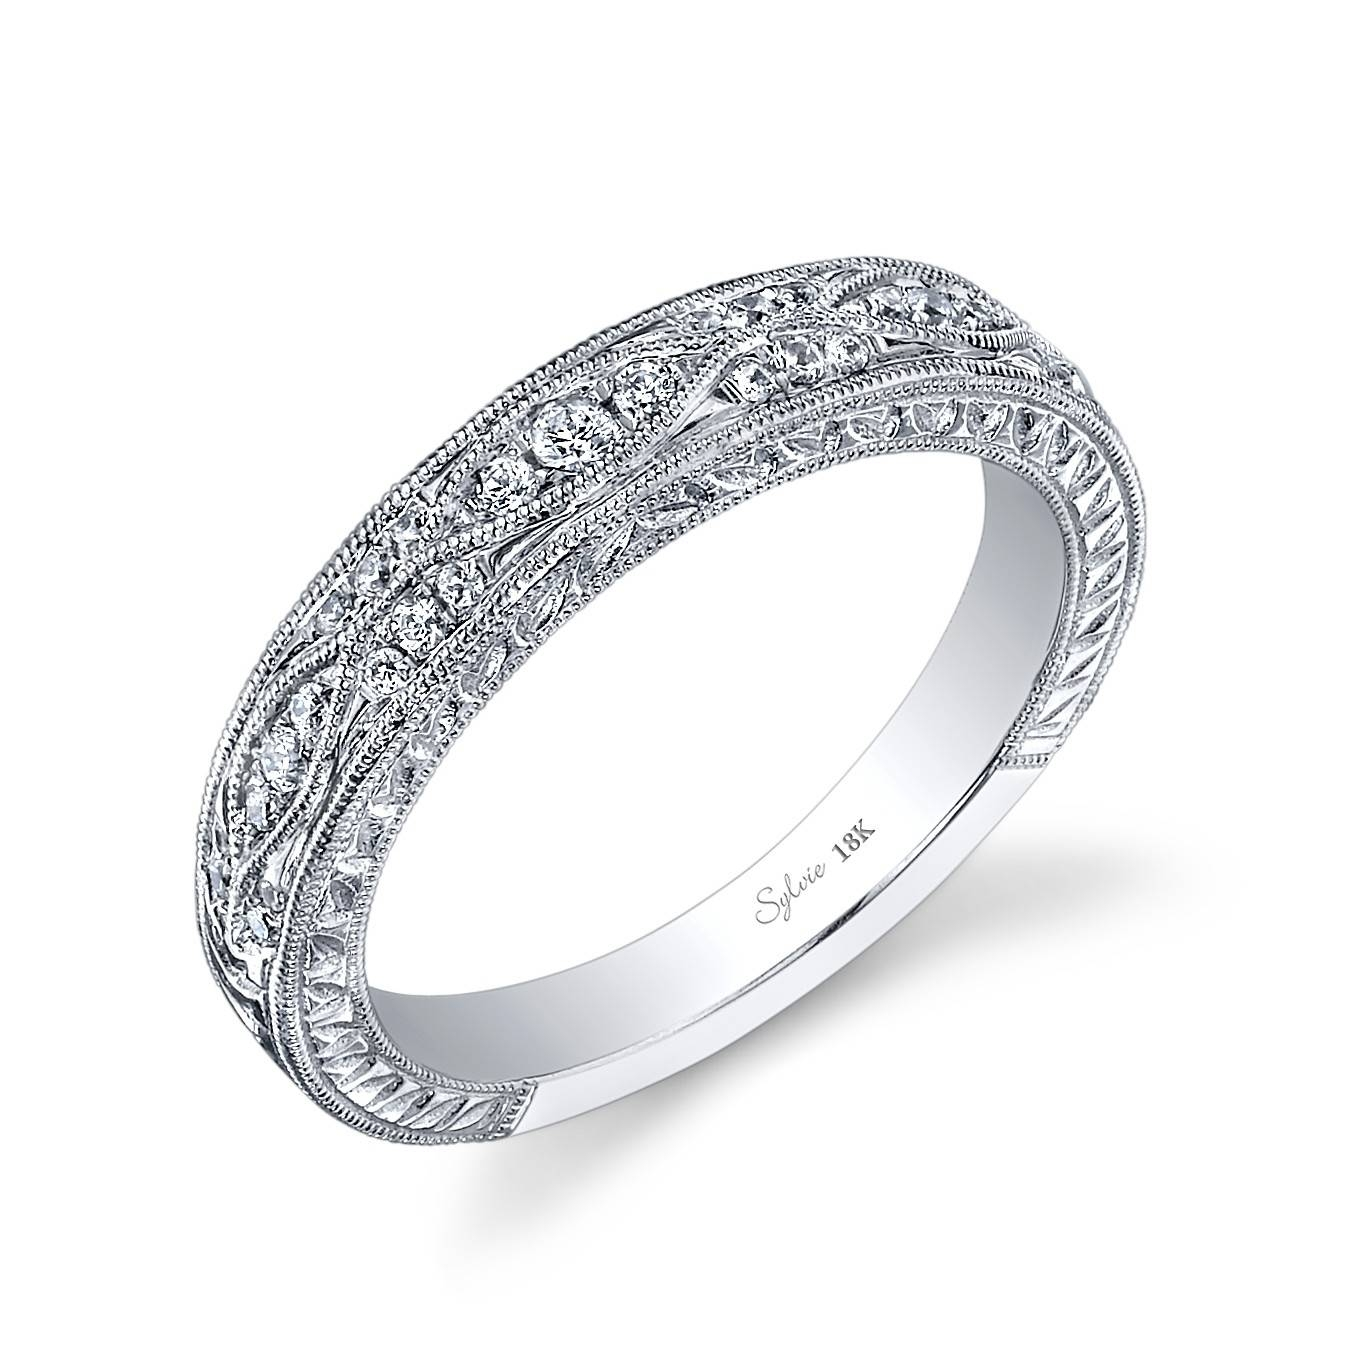 Wedding Rings : Engraved Wedding Band Designs Engravable Wedding Within Engraved Wedding Bands (View 13 of 15)